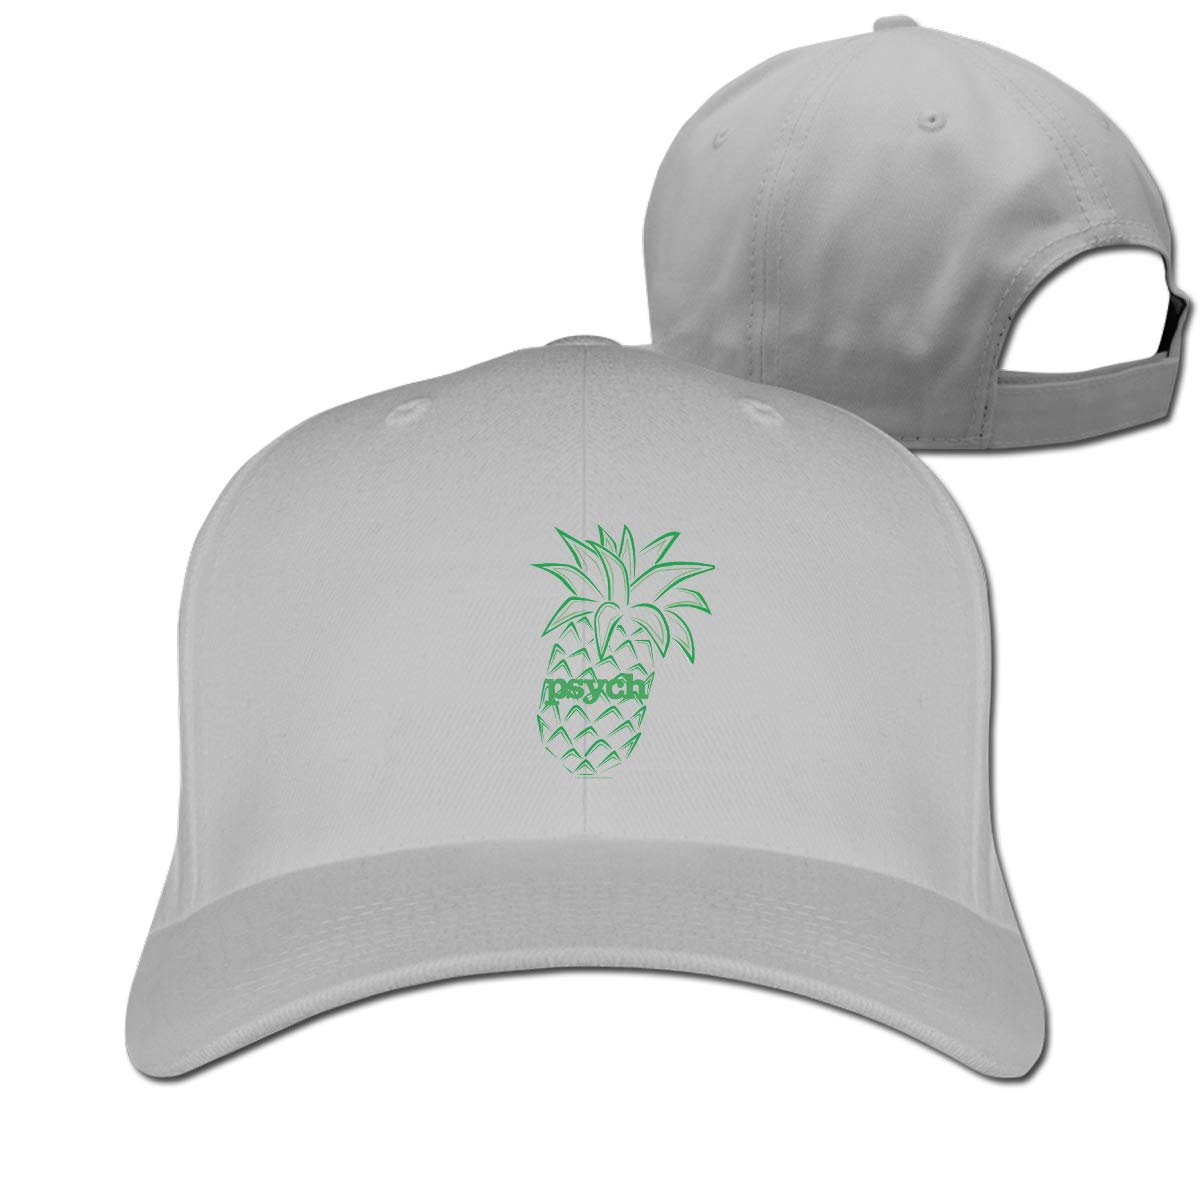 Psych Pineapple Fashion Adjustable Cotton Baseball Caps Trucker Driver Hat Outdoor Cap Gray